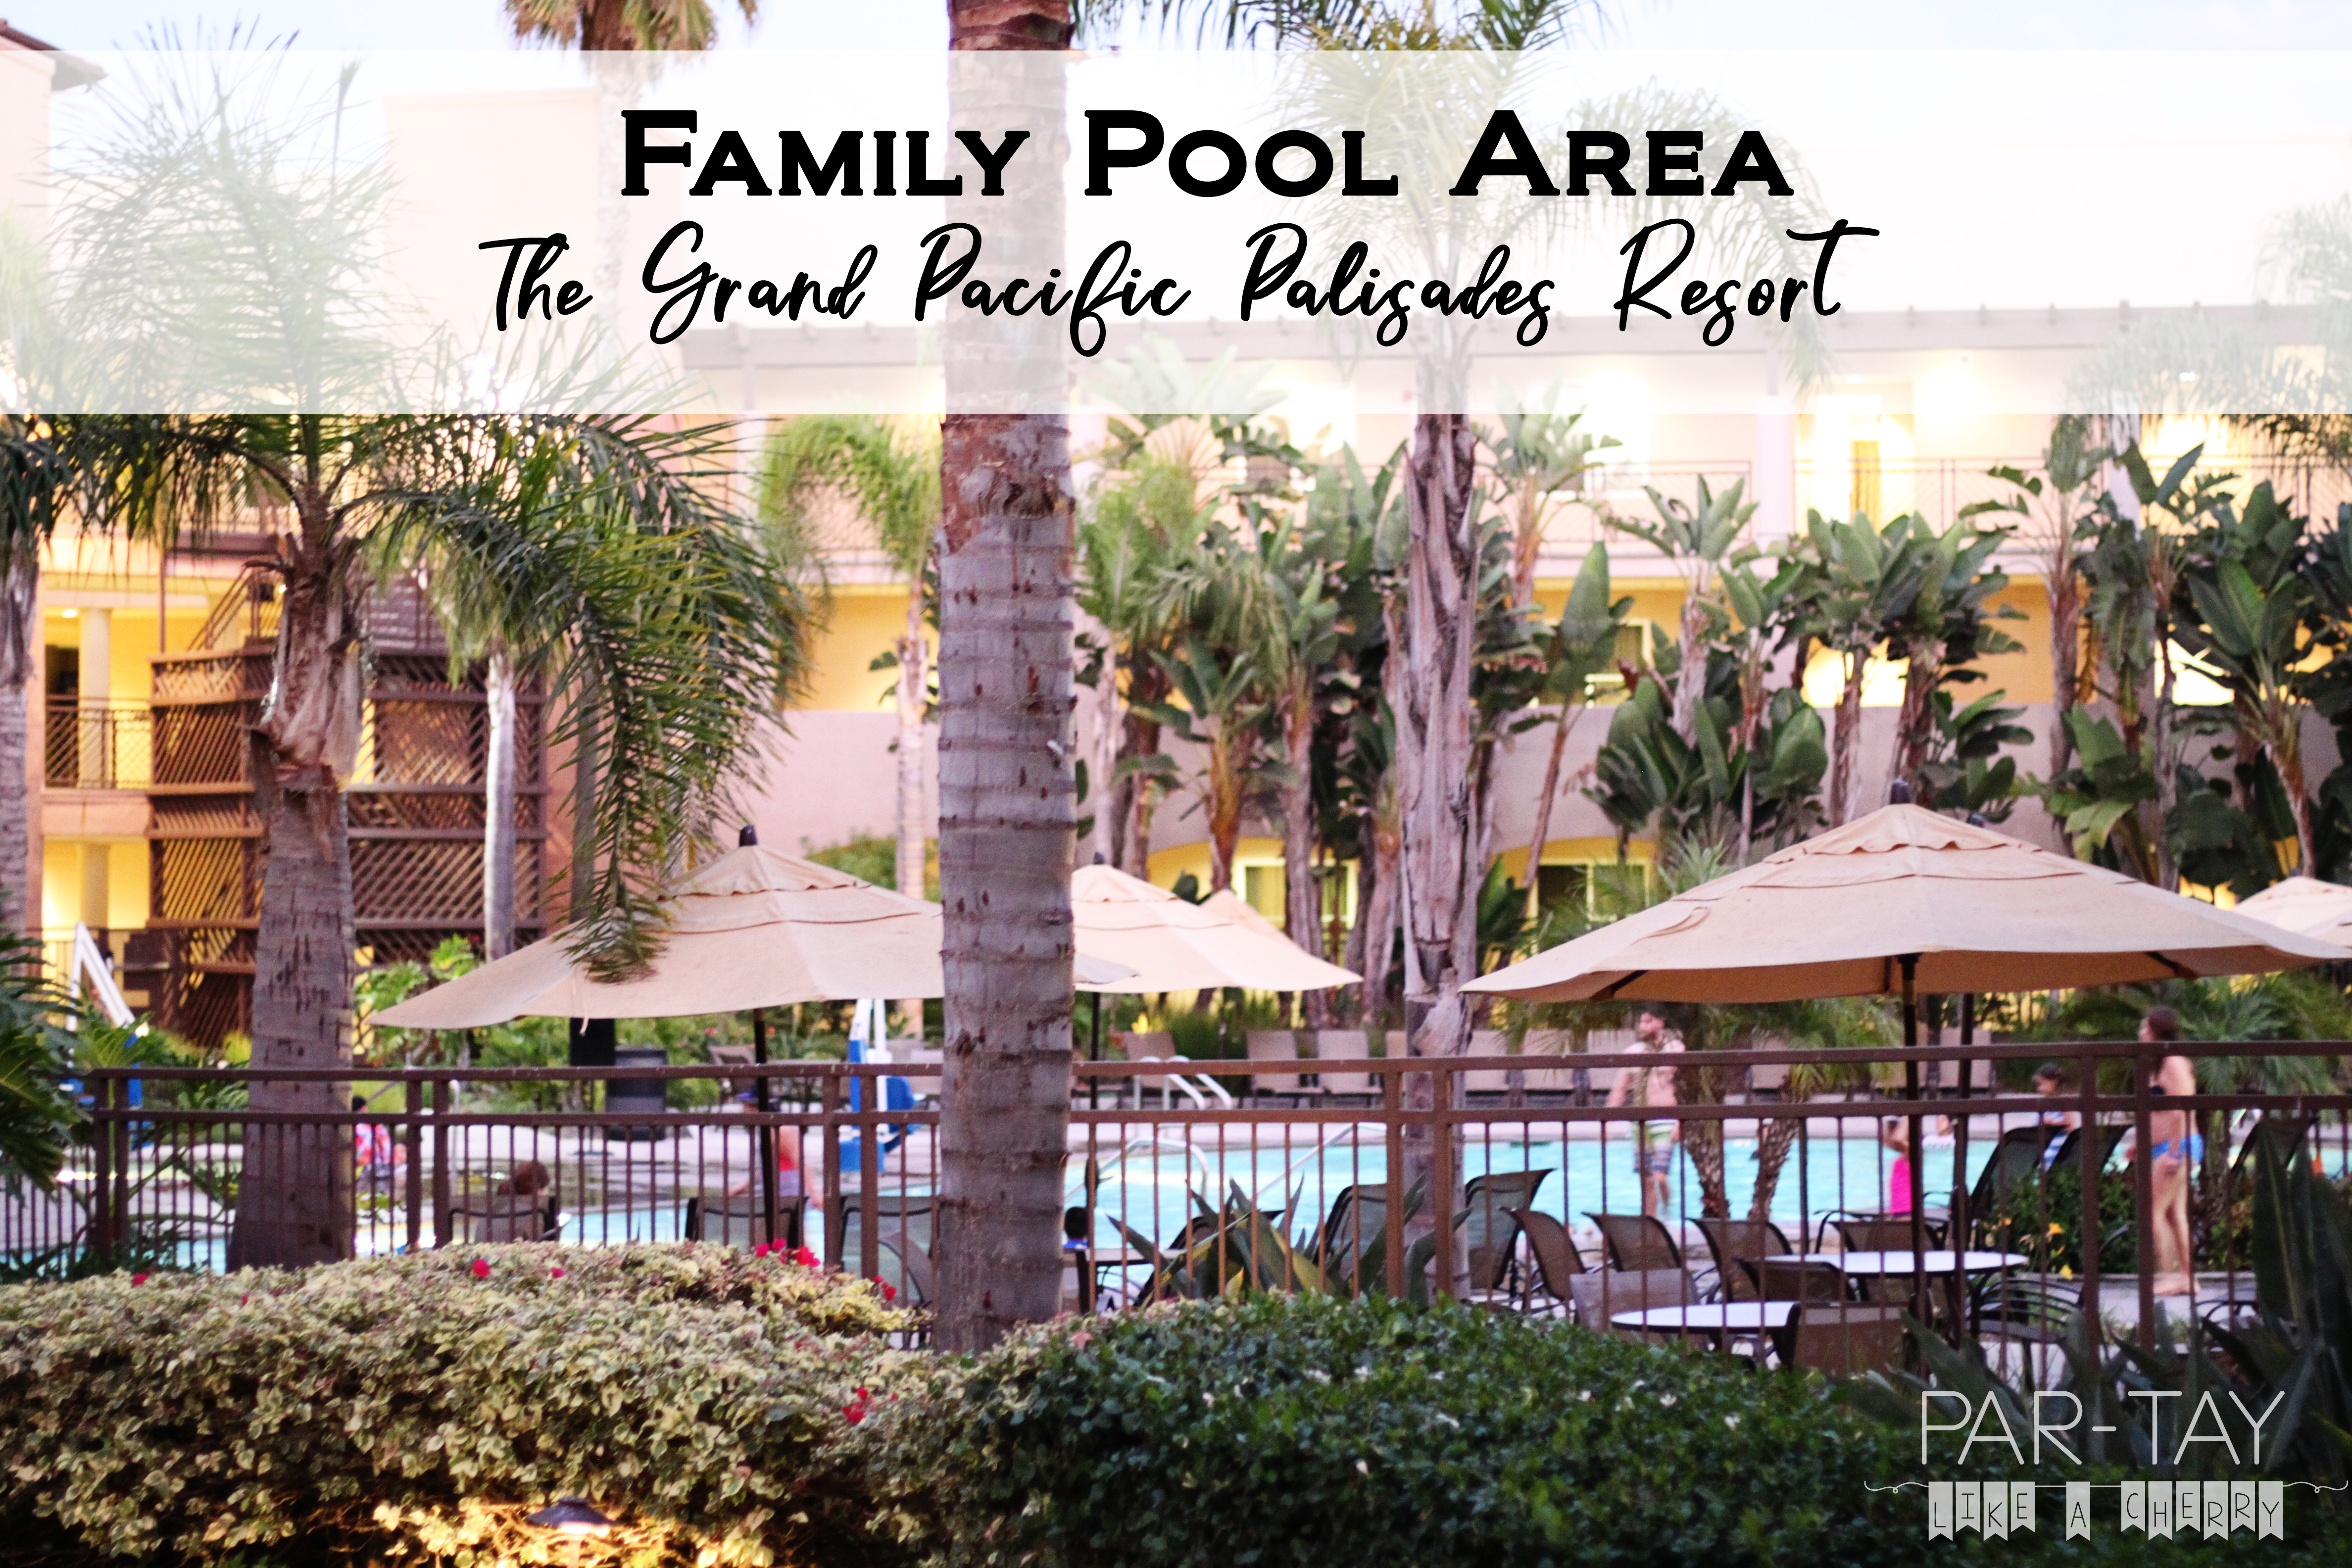 family pool area at the grand pacific palisades resort in carlsbad california